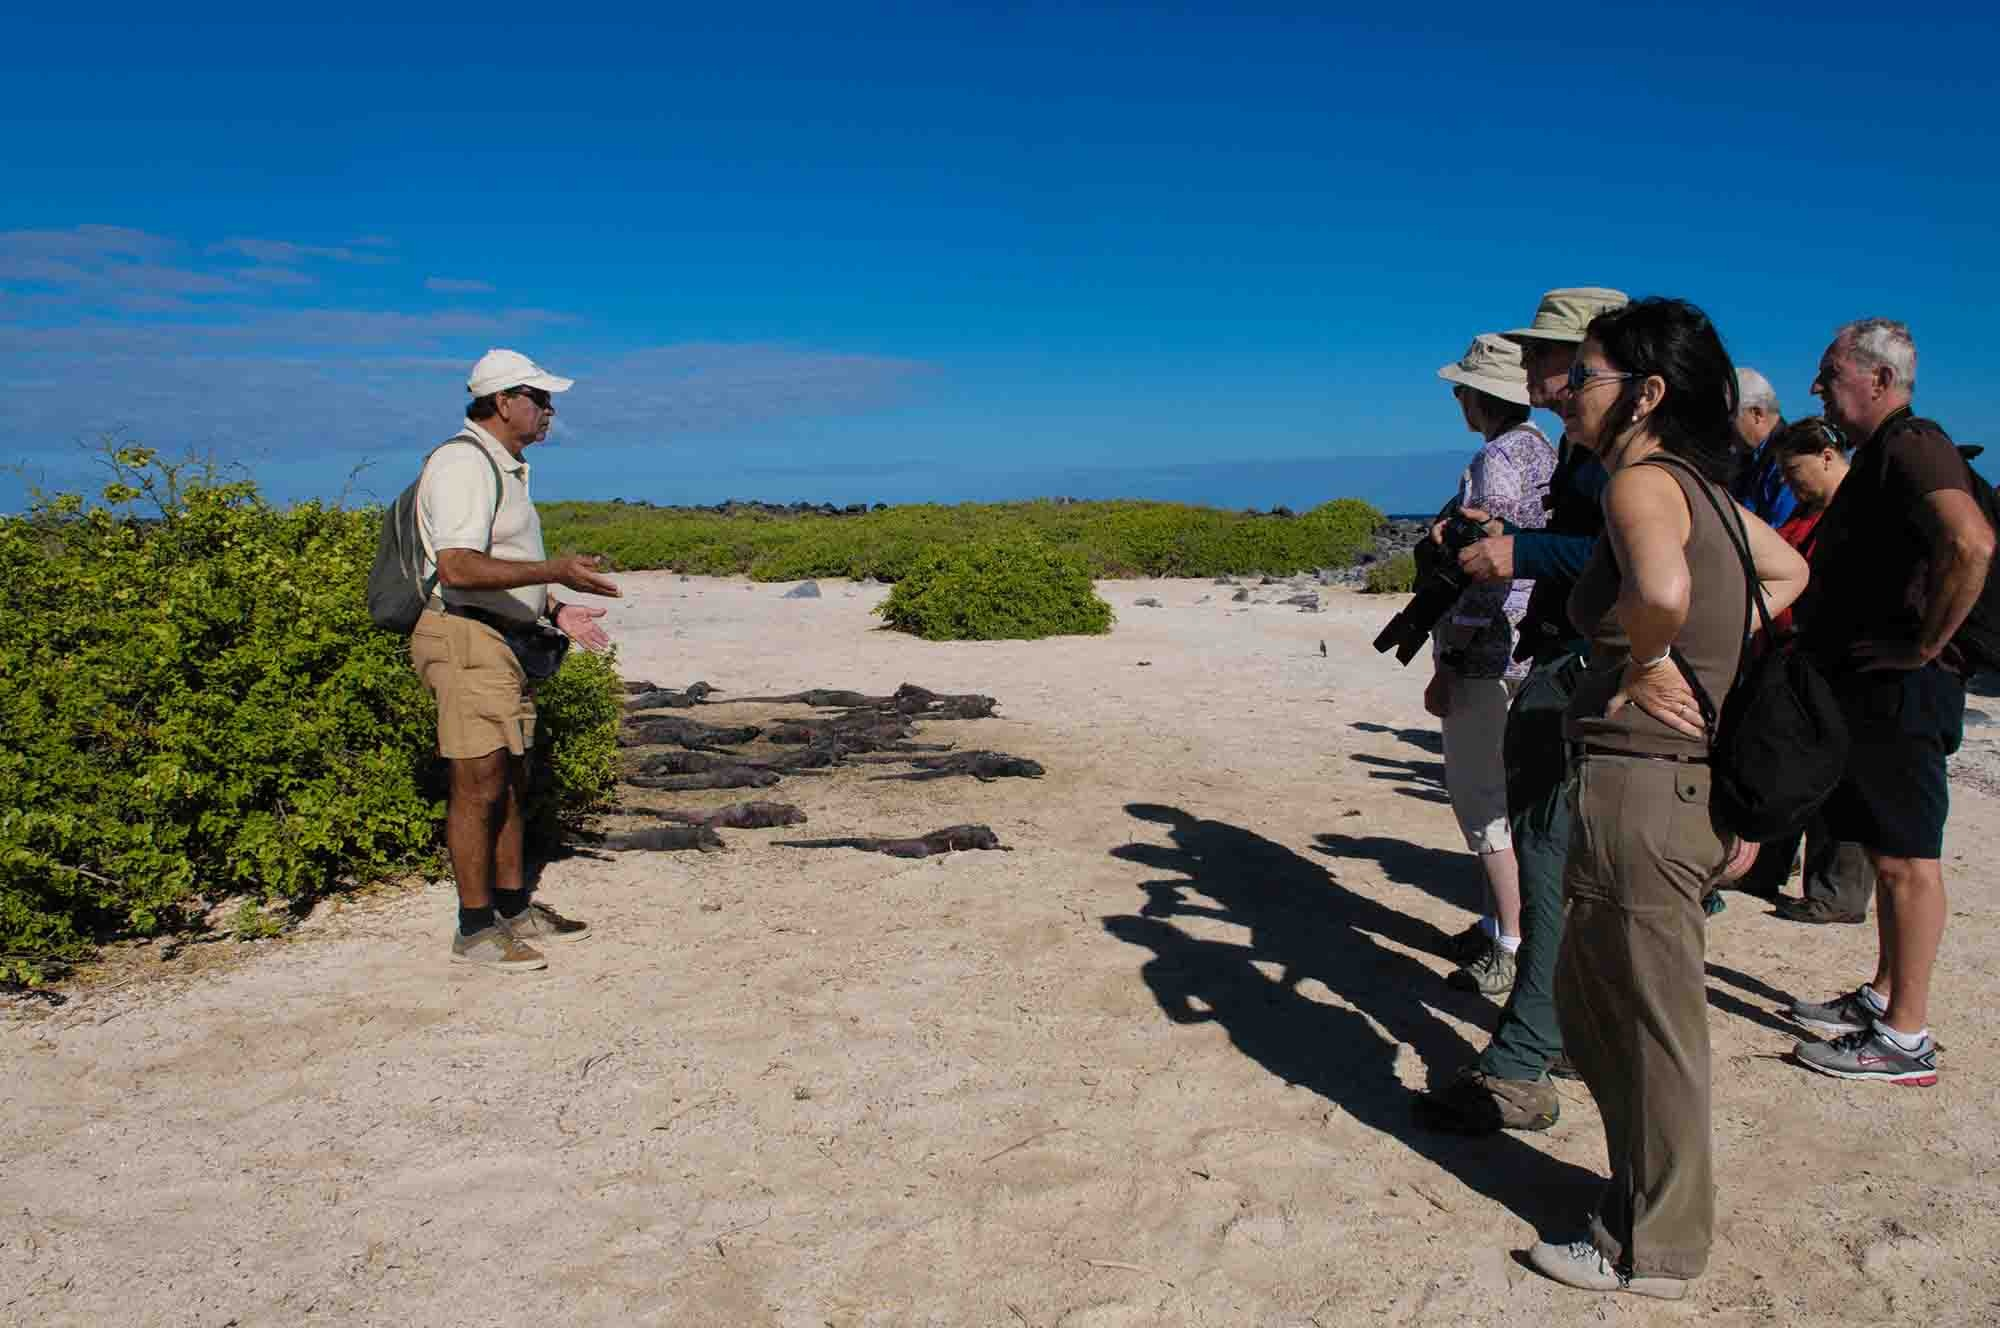 The Naturalist Guide and The Expedition Equipment